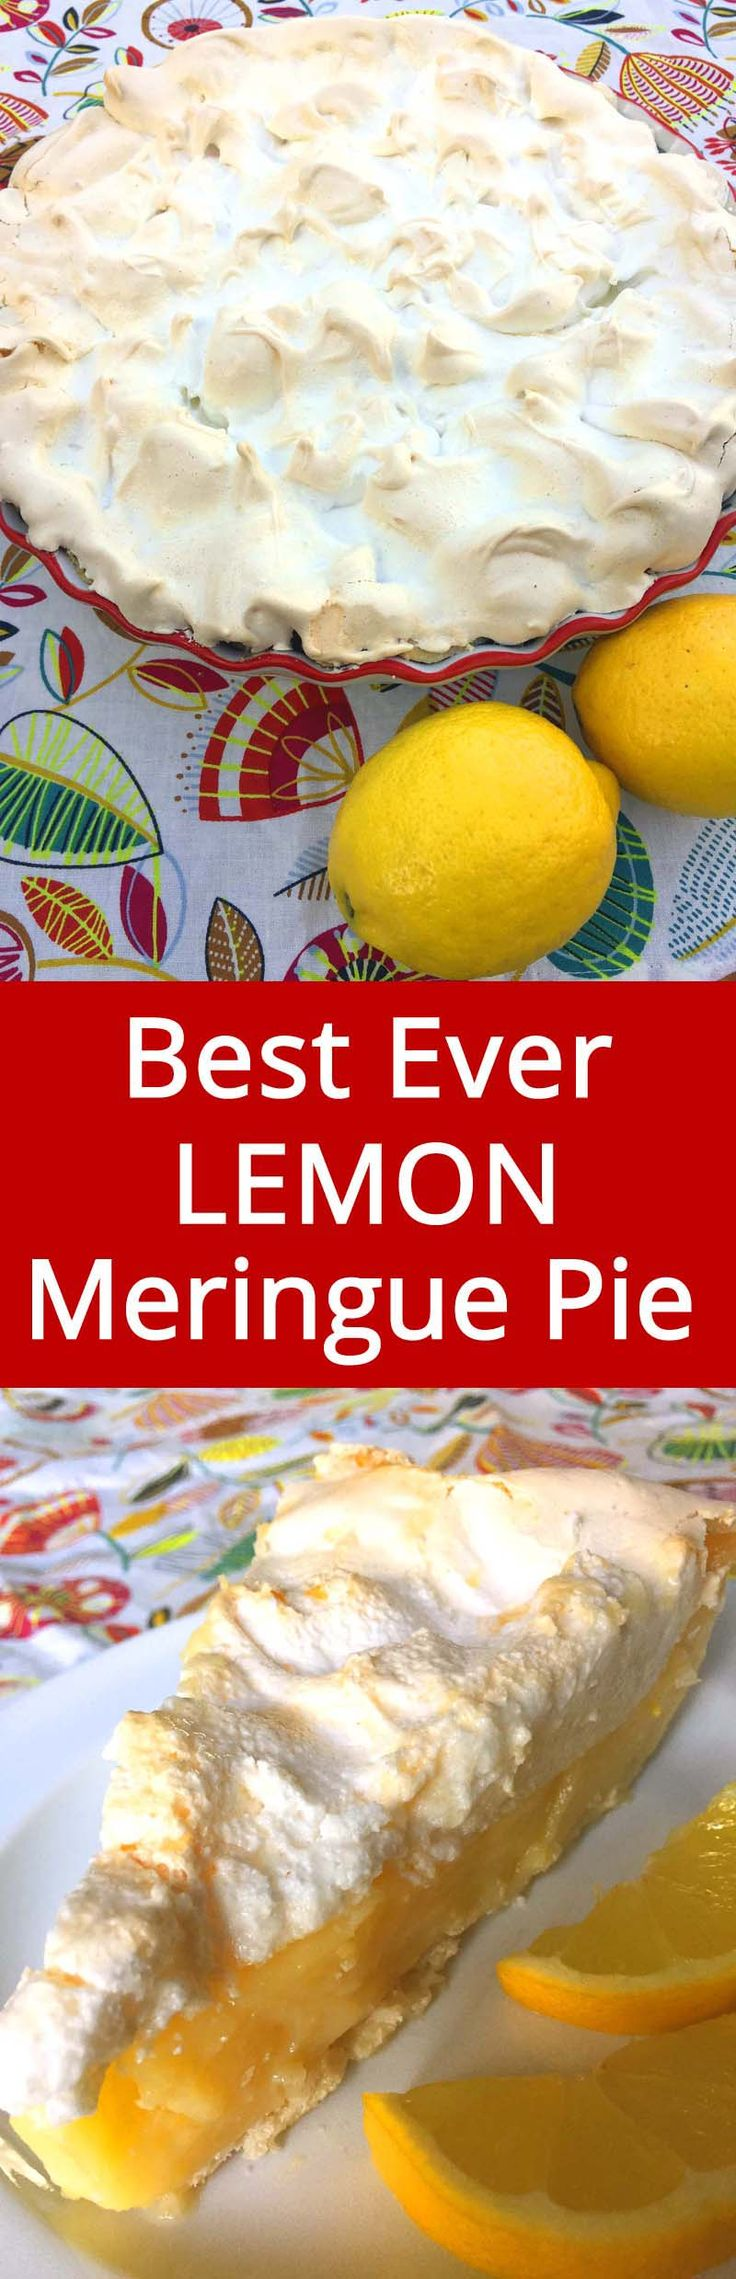 This lemon meringue pie recipe is amazing! Everyone begs me to make this pie every time!